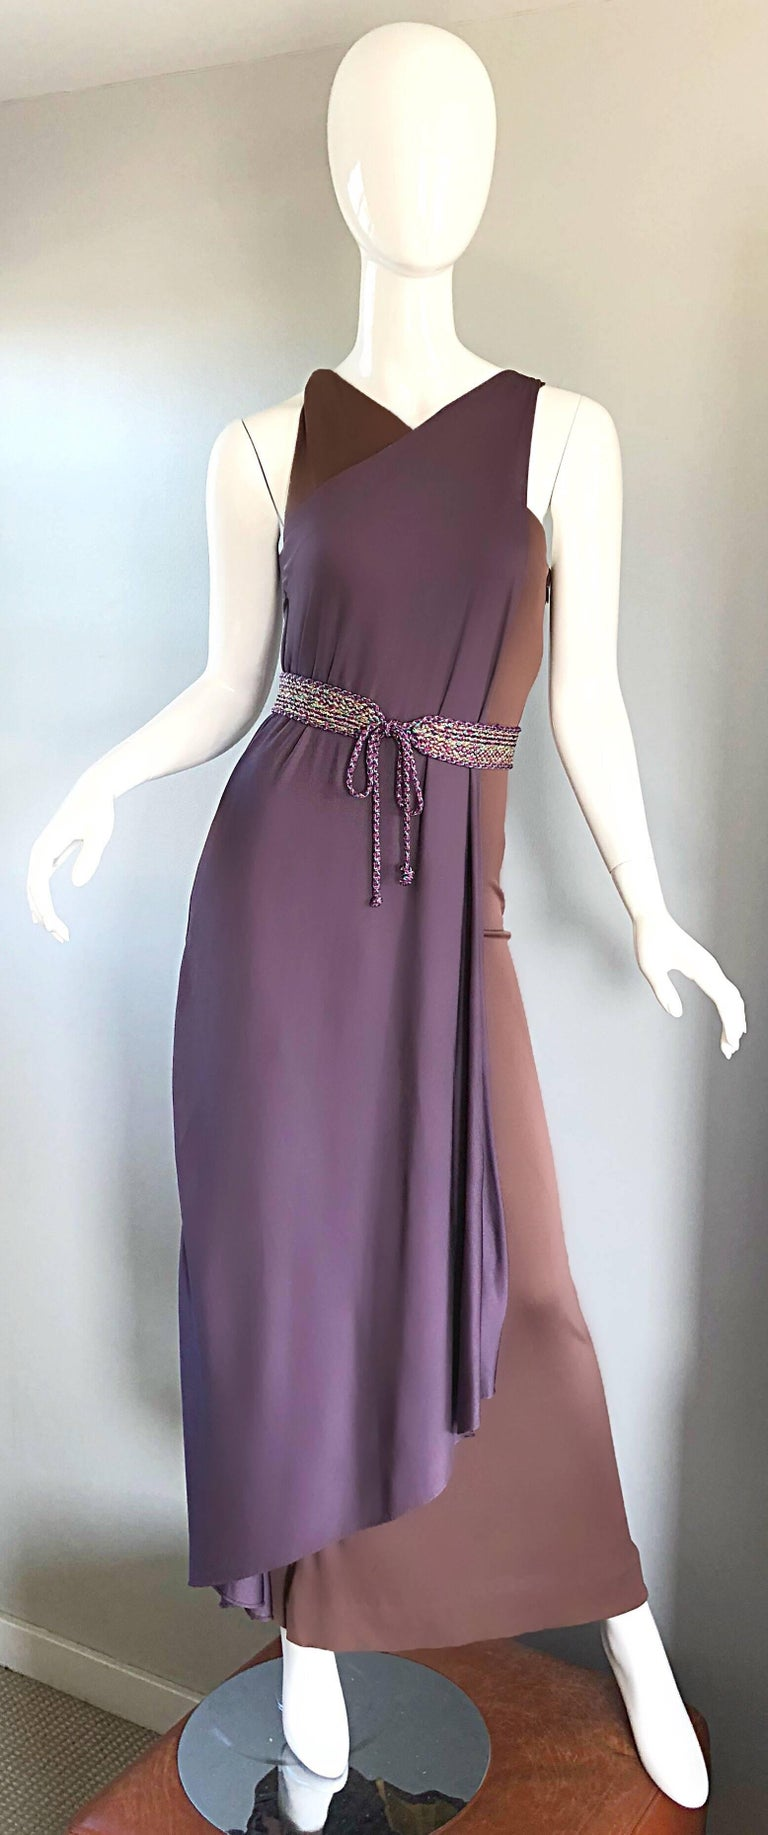 Gorgeous 70s BILL BLASS purple and brown silk jersey Avant Garde Grecian inspired color block belted evening dress! Slinky silk jersey fabric hugs the body in all the right places, and allows for plenty of stretch. Brown body, with a purple overlay.